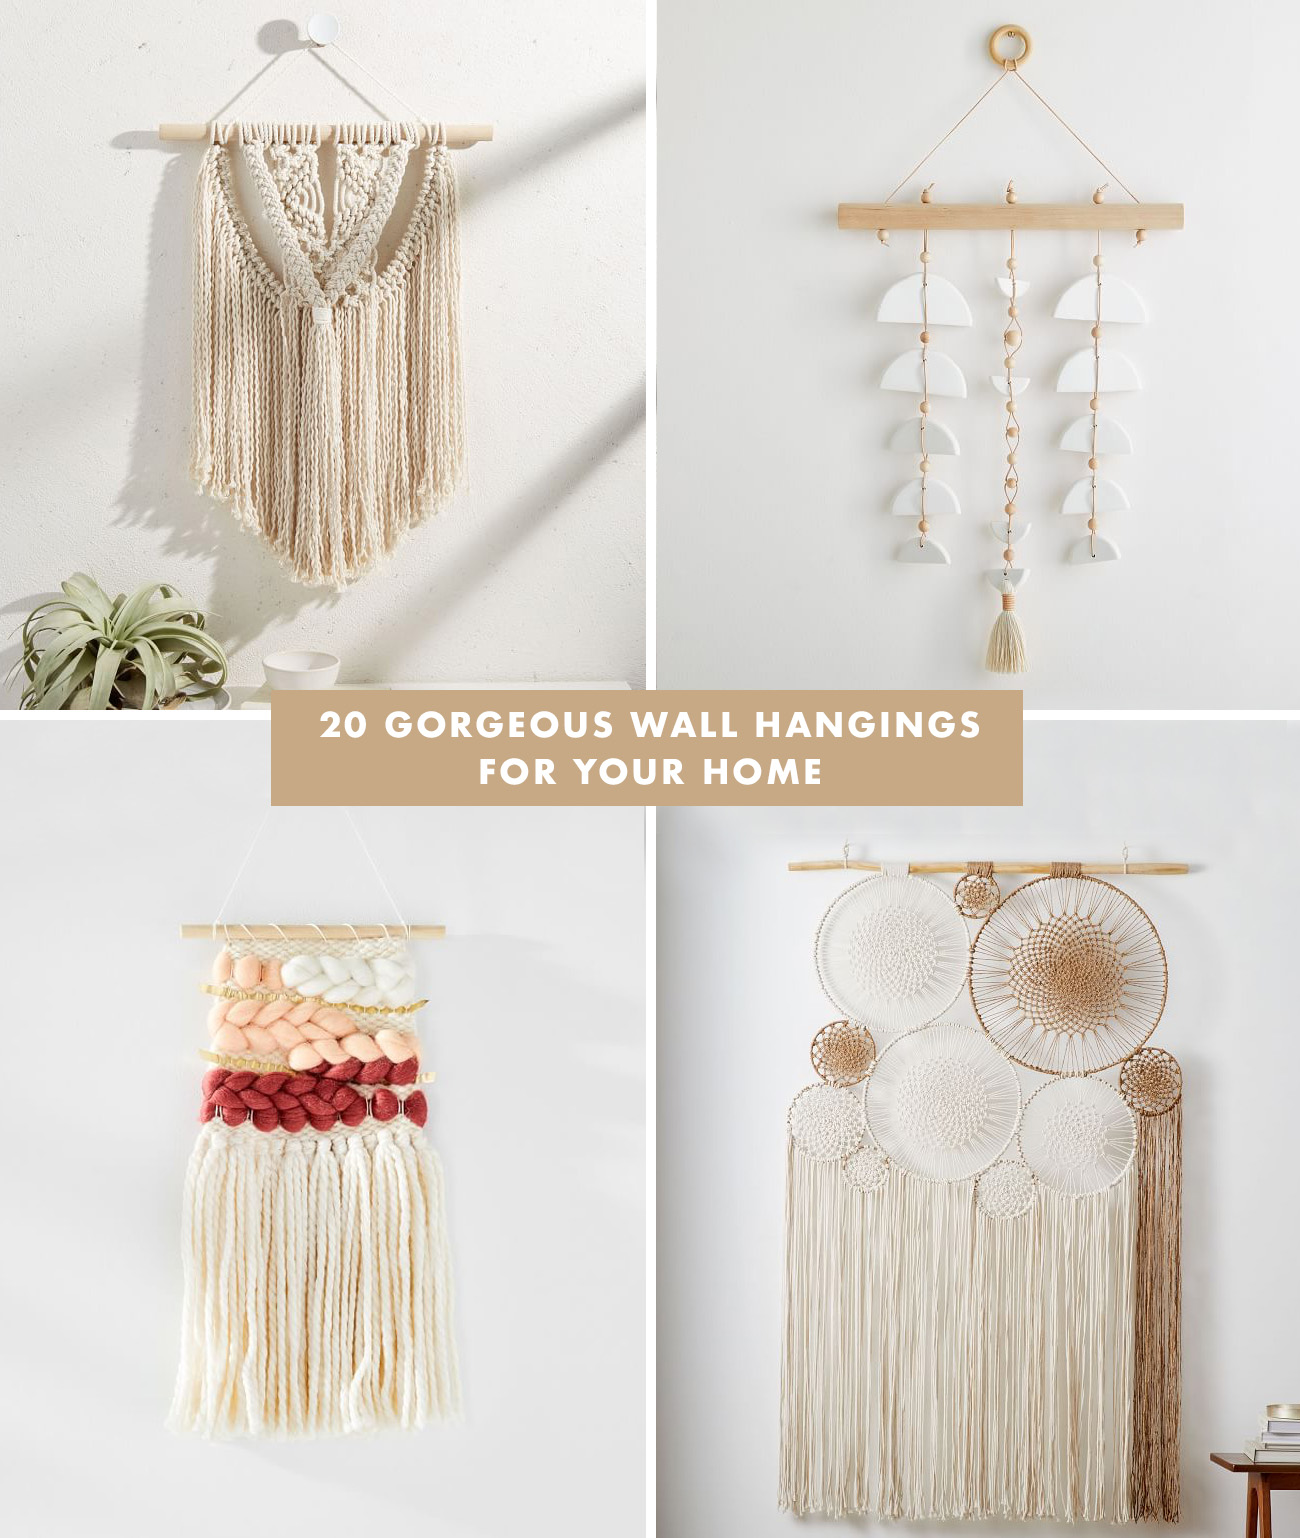 20 Gorgeous Wall Hangings for your Home